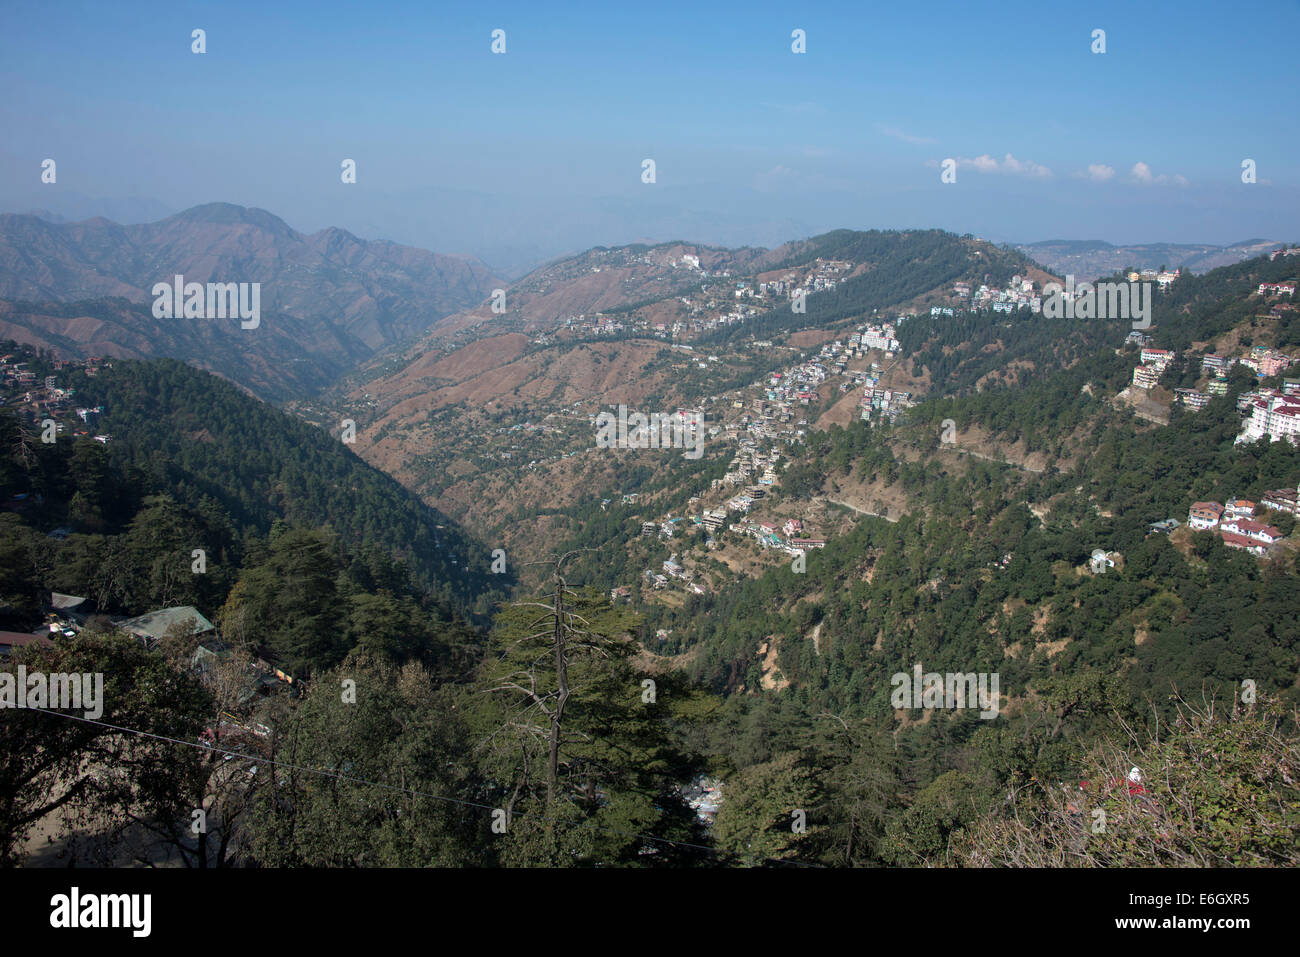 Shimla is a large city with a sprawling population of over a million scattered on the  foothills in Himachal Pradesh,India. - Stock Image